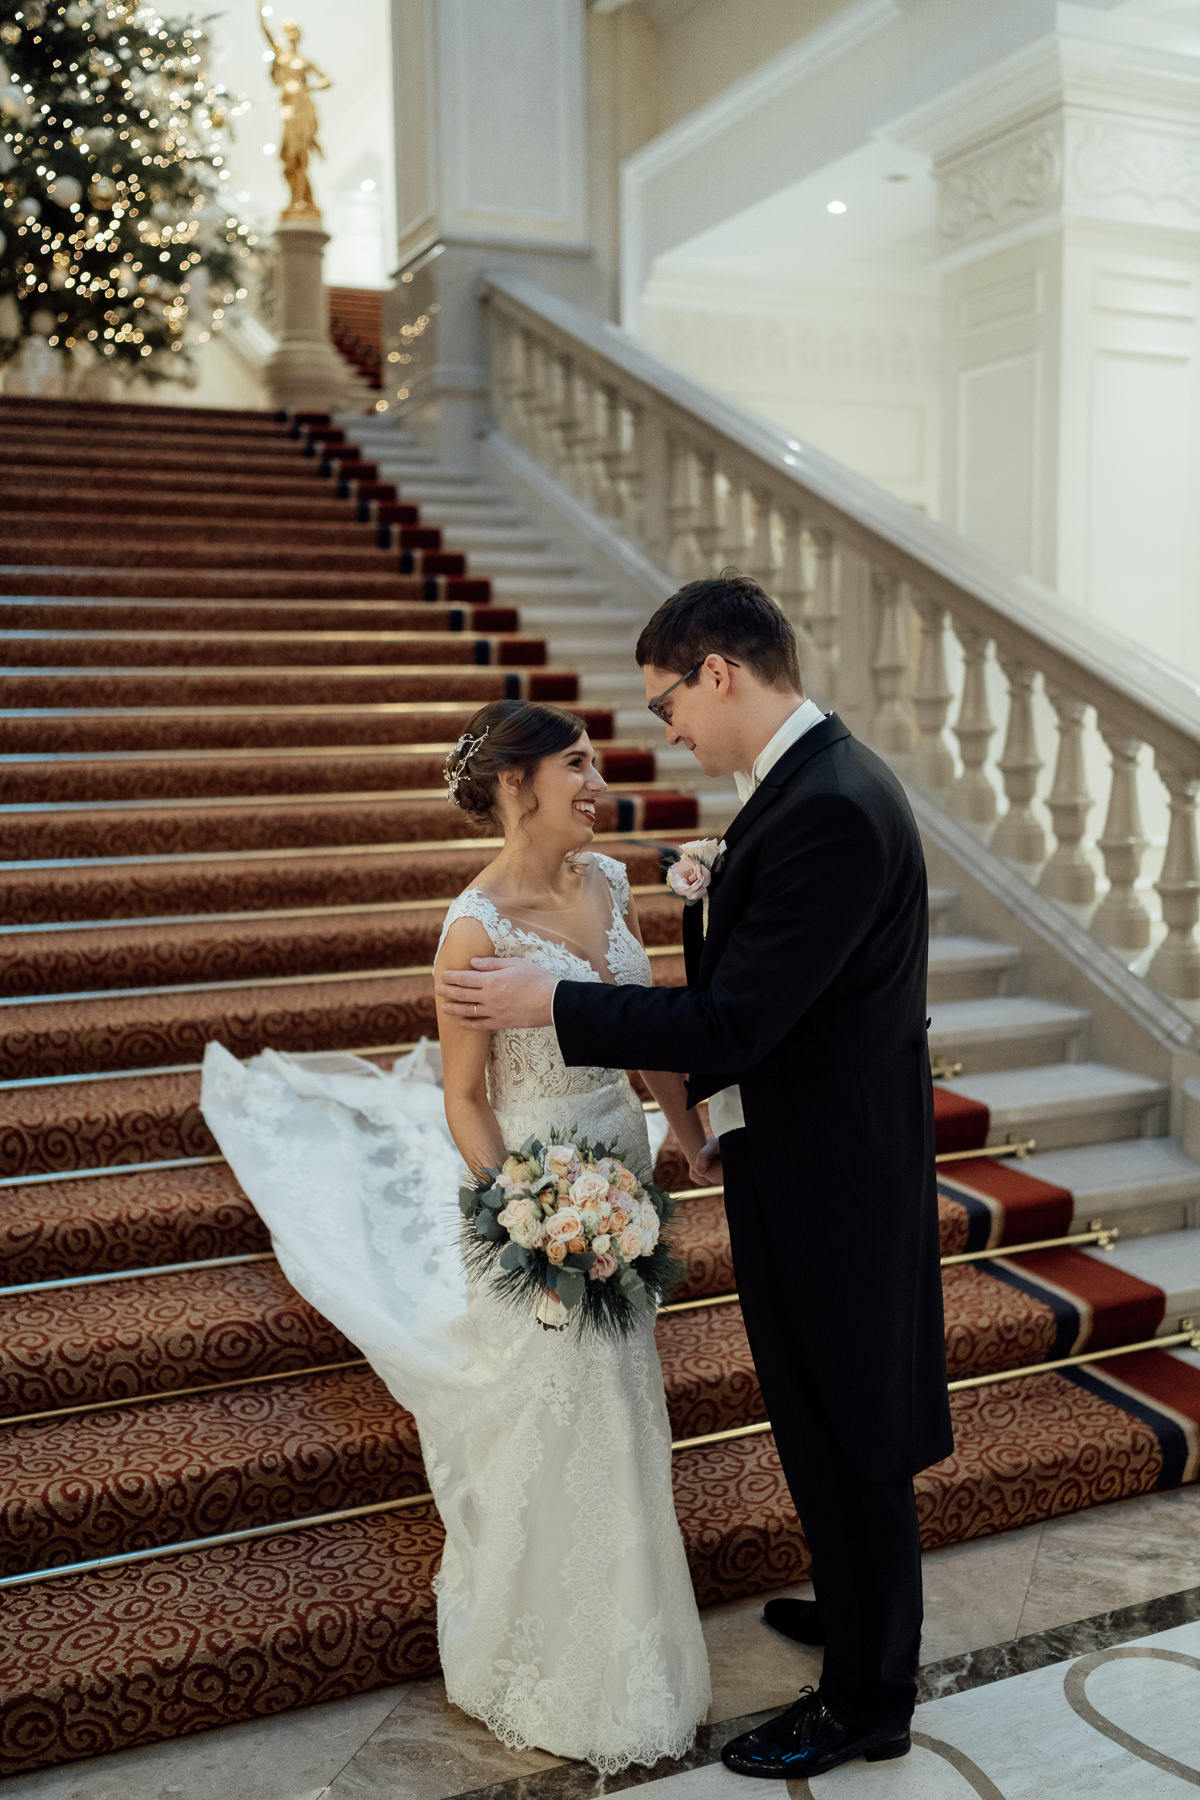 First look in Corinthia Hotel Budapest on grand staircase